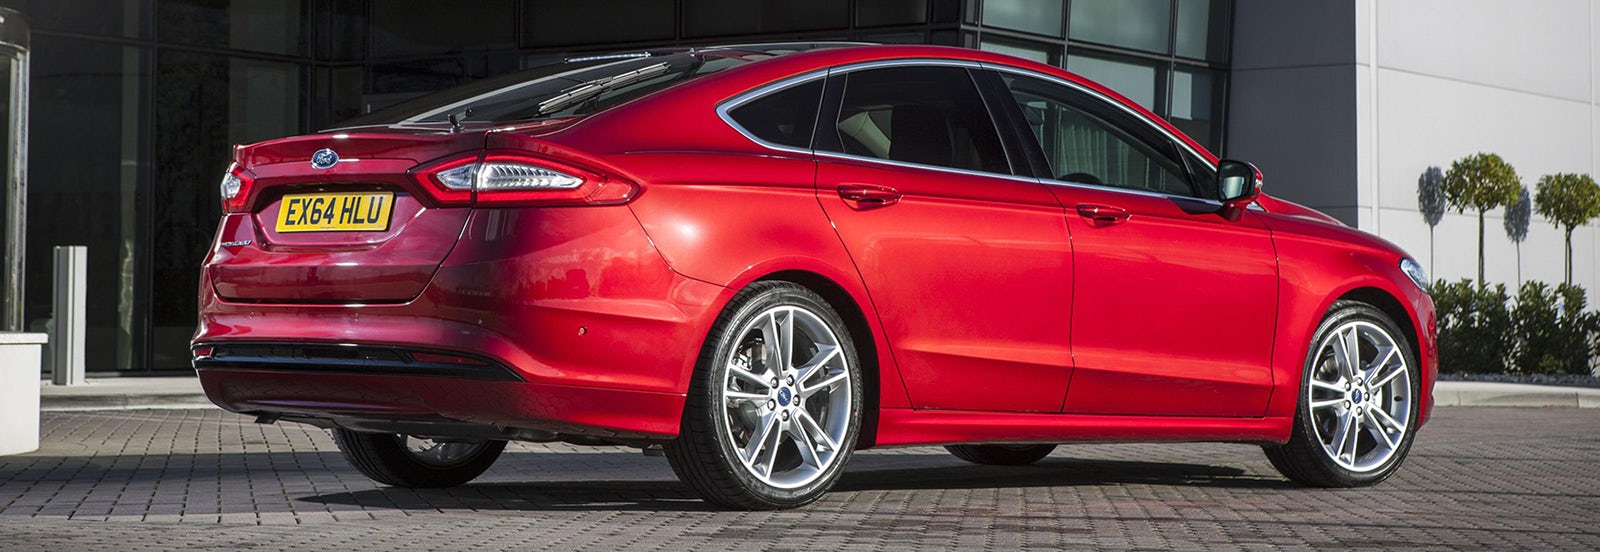 Ford Mondeo Estate Sizes Dimensions Guide Carwow